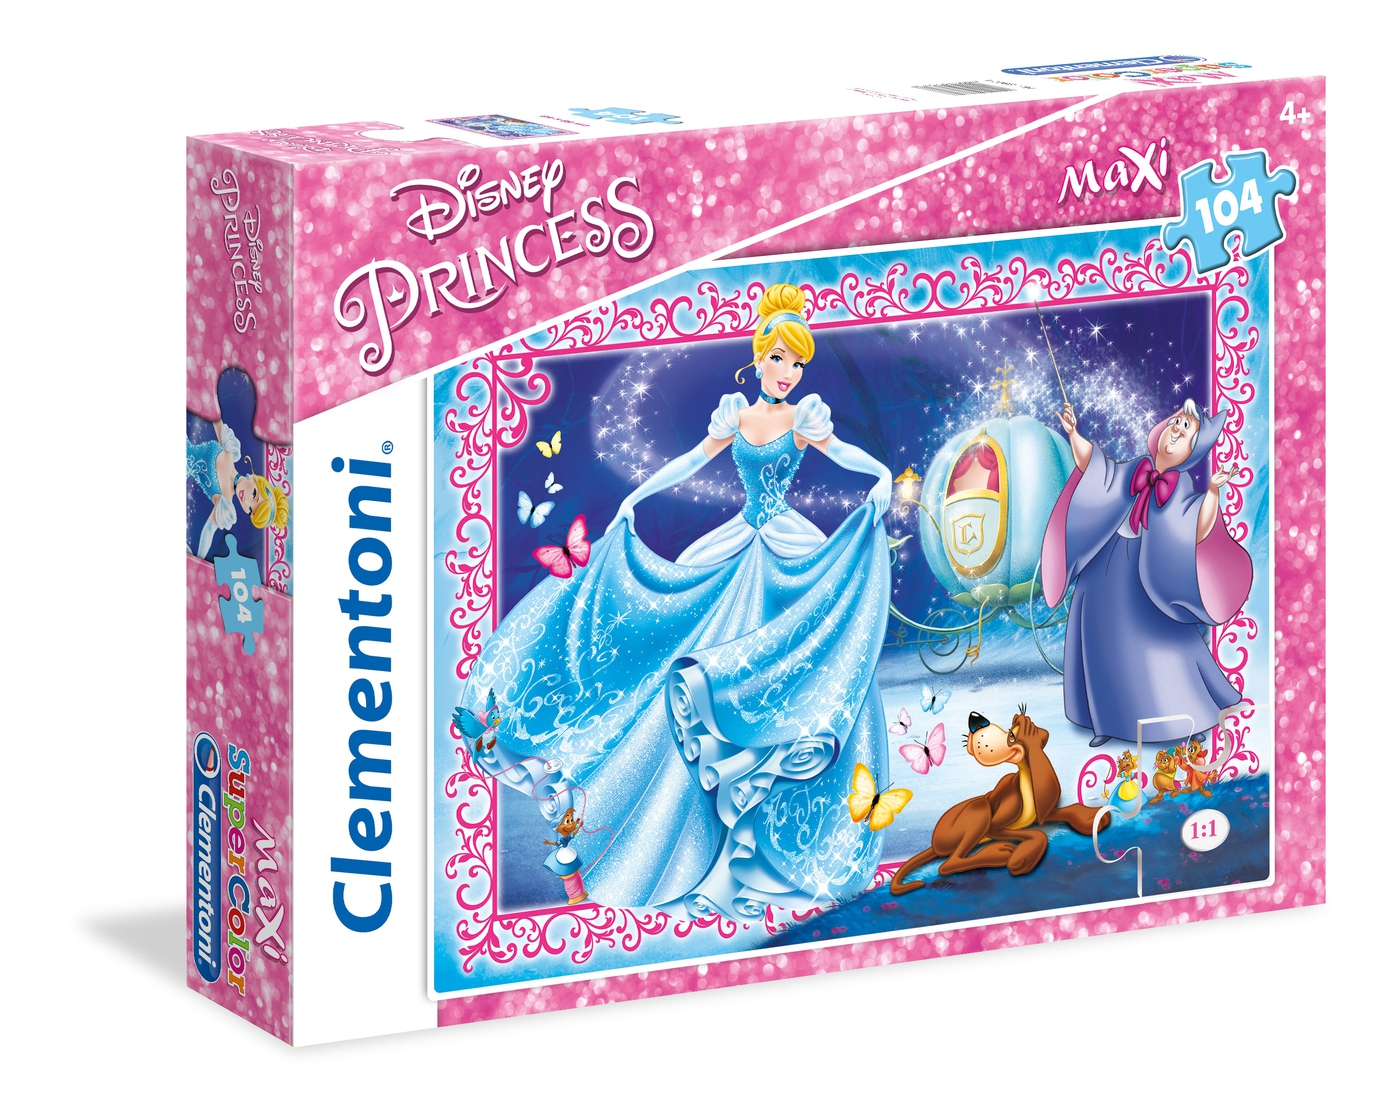 Disney Princess: Cendrillon - 104 Maxi Pcs - Supercolor serapportantà Cendrillon 3 Disney